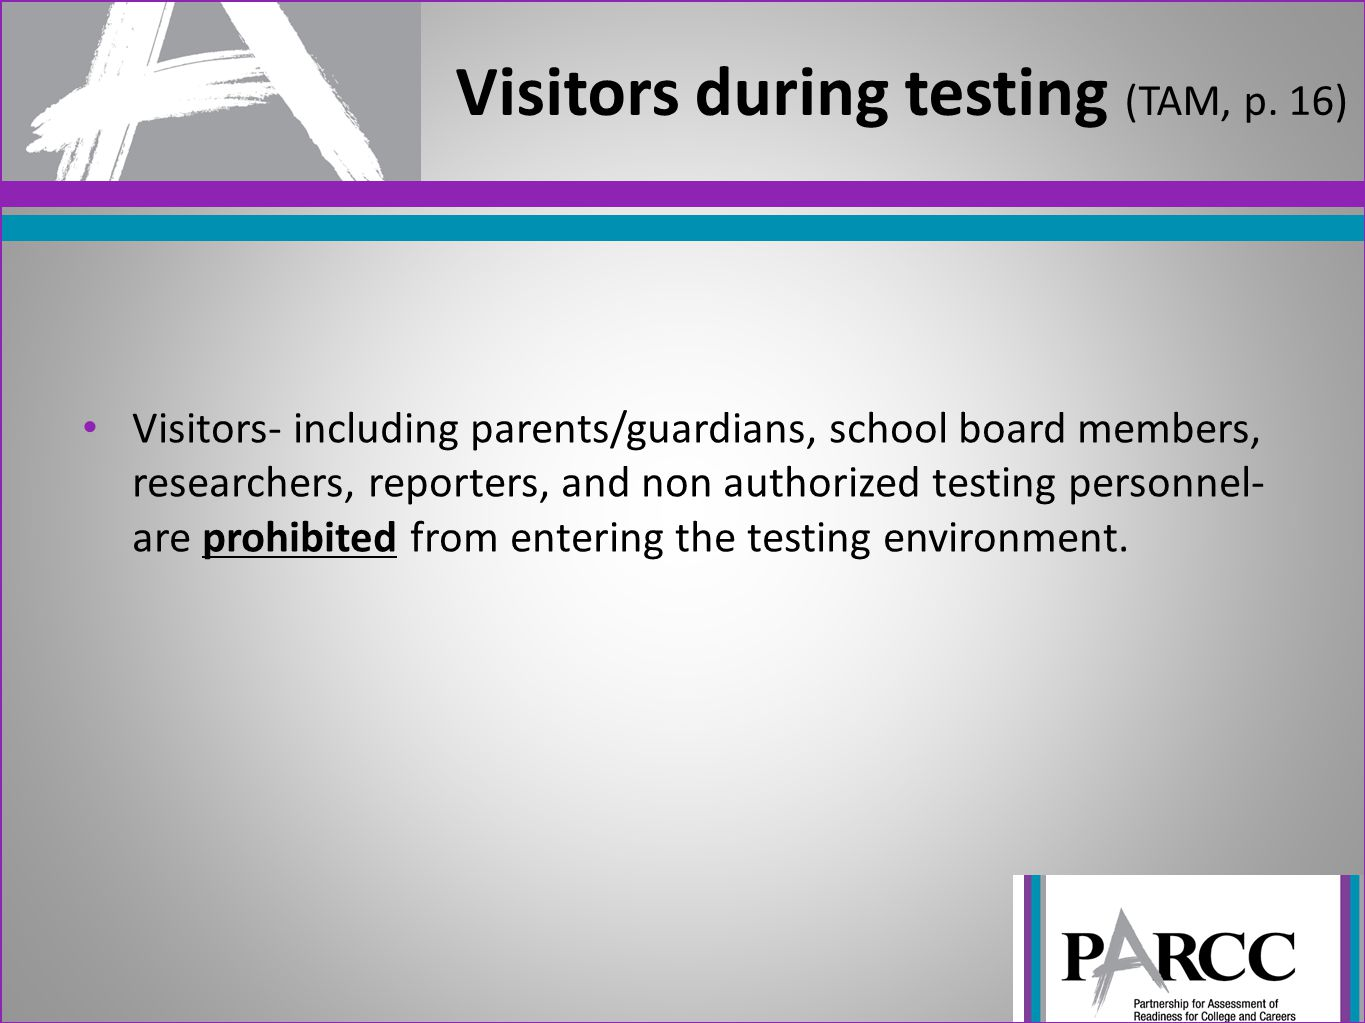 Visitors- including parents/guardians, school board members, researchers, reporters, and non authorized testing personnel- are prohibited from enterin